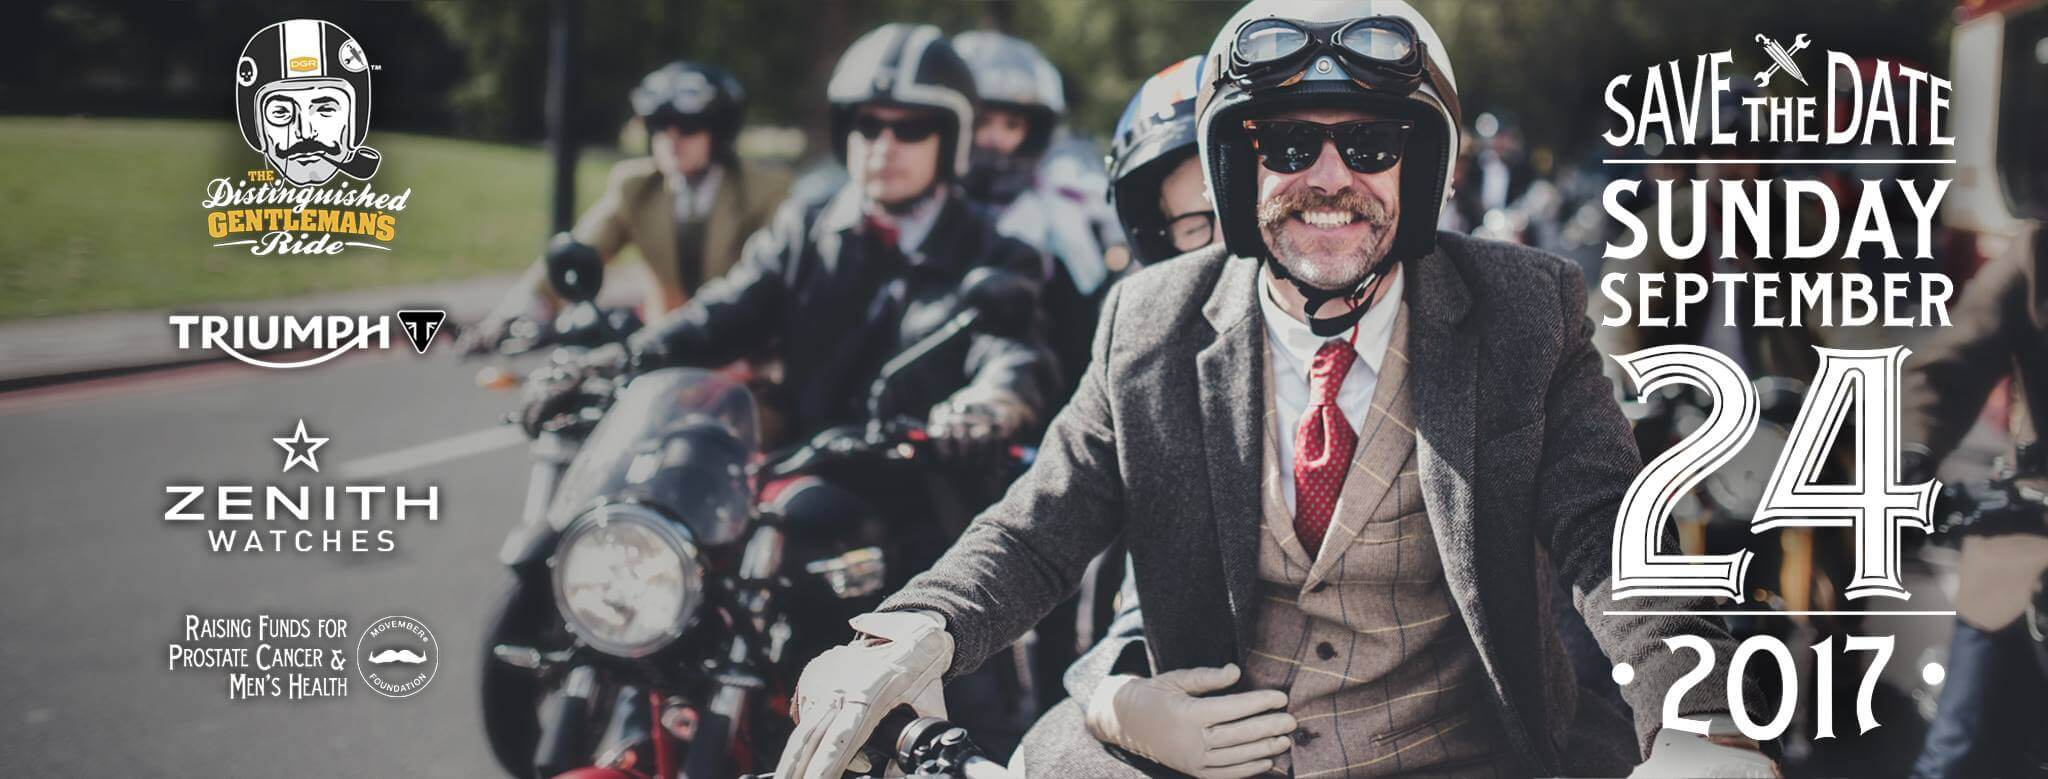 Distinguished Gentleman's Ride 2017 Save the Date